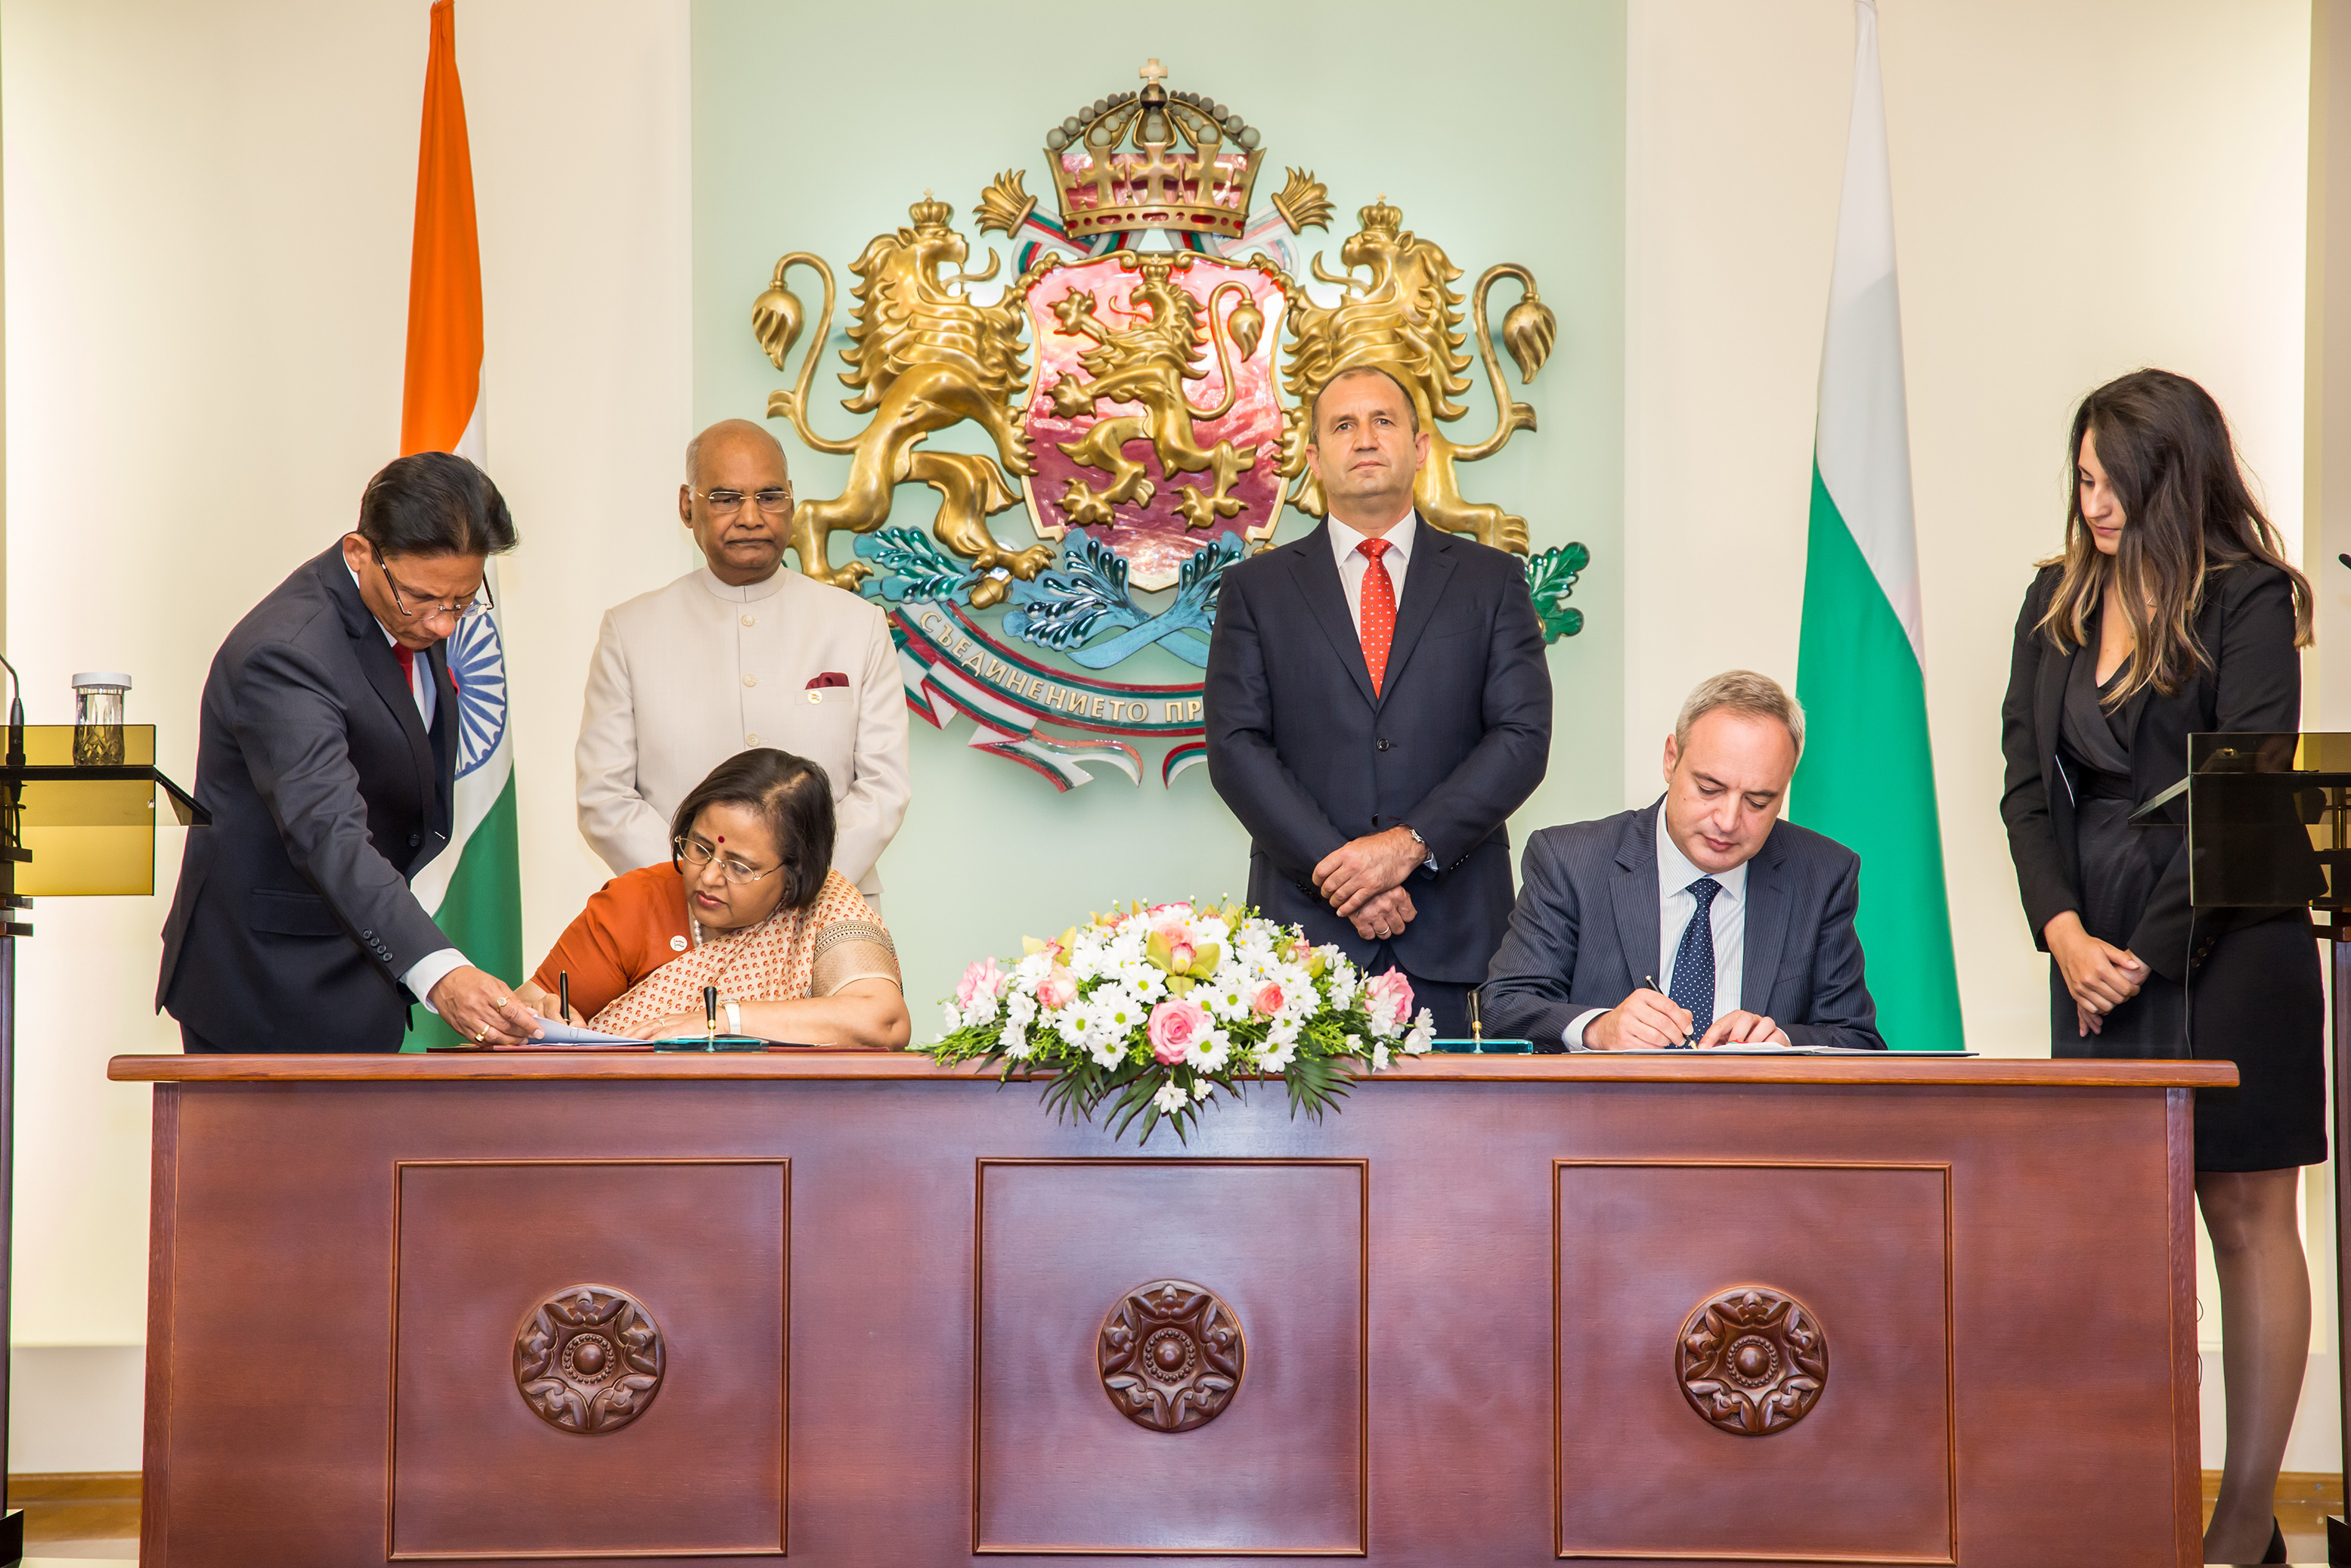 During the visit of Honourable President of India H.E. Mr. Ram Nath Kovind to Bulgaria, 5 MoUs on Cooperation in Science & Technology, Civil Nuclear, Investment, Tourism, and Establishment of Hindi Chair at Sofia University were signed